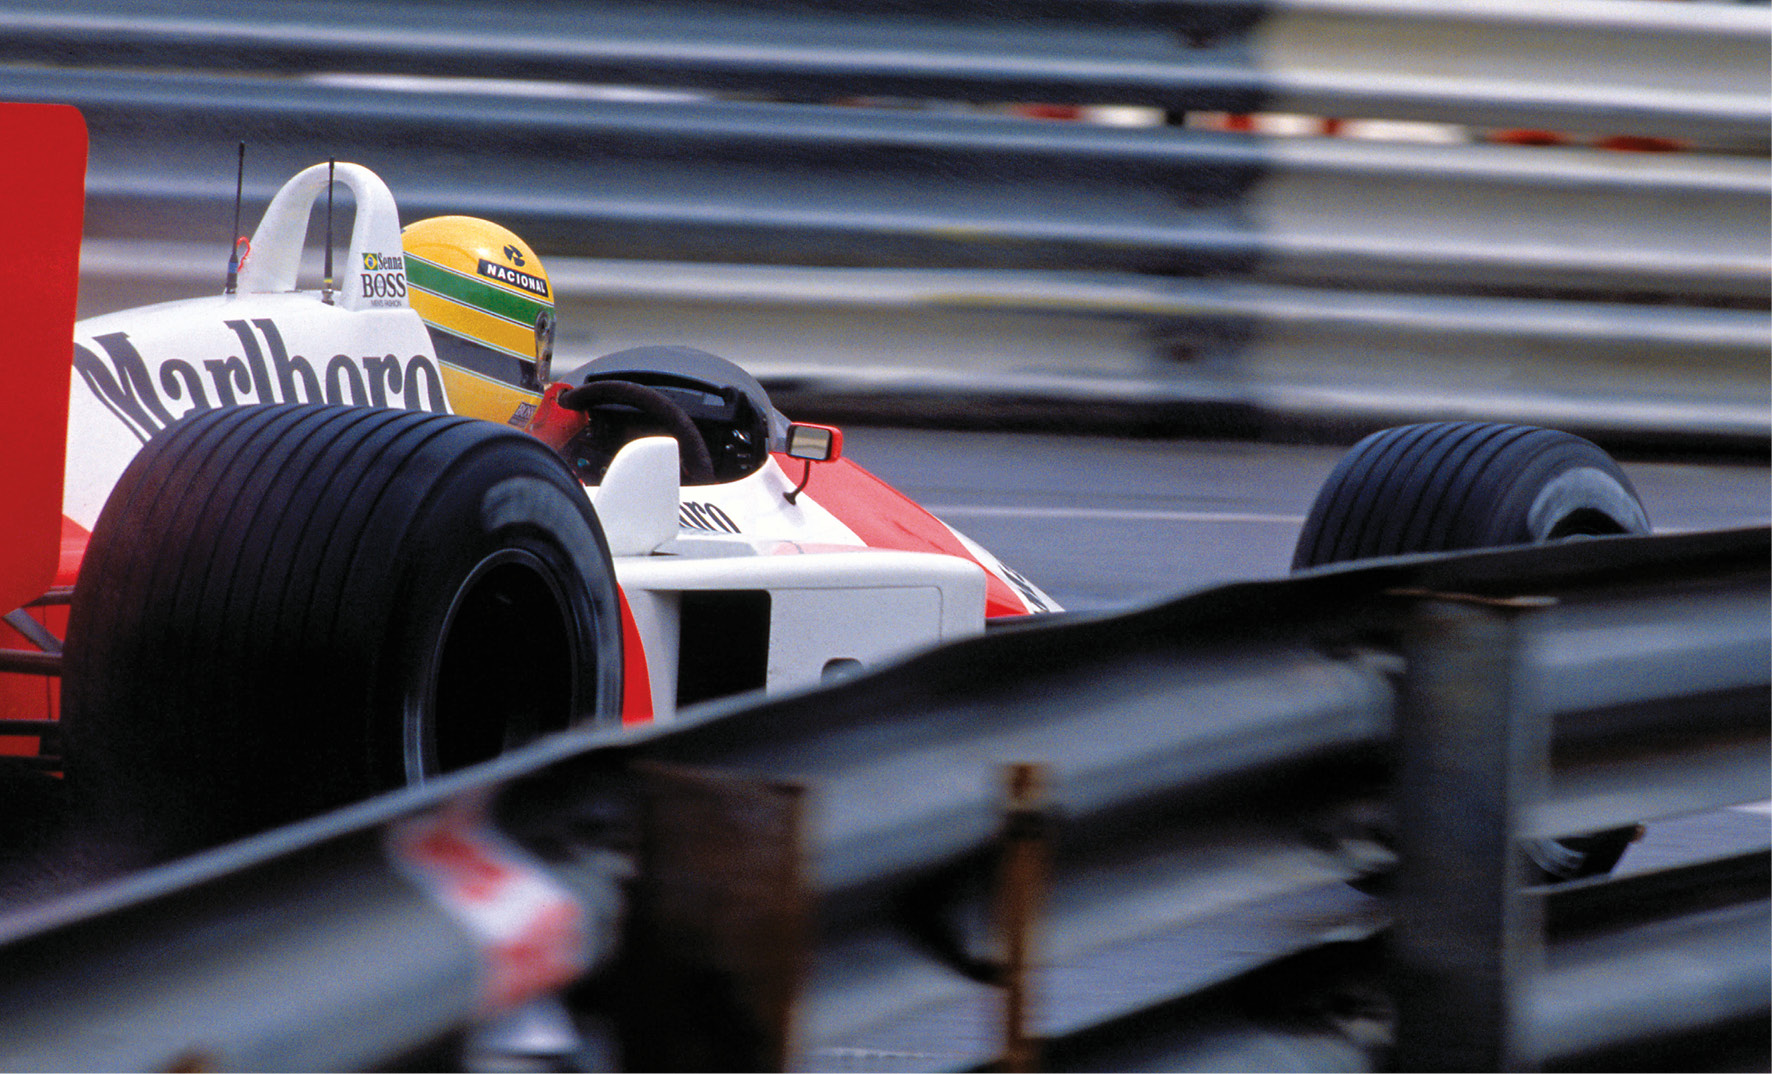 Monaco 1988, when Senna felt he had absolutely nothing left to give –a sensation he'd never felt before